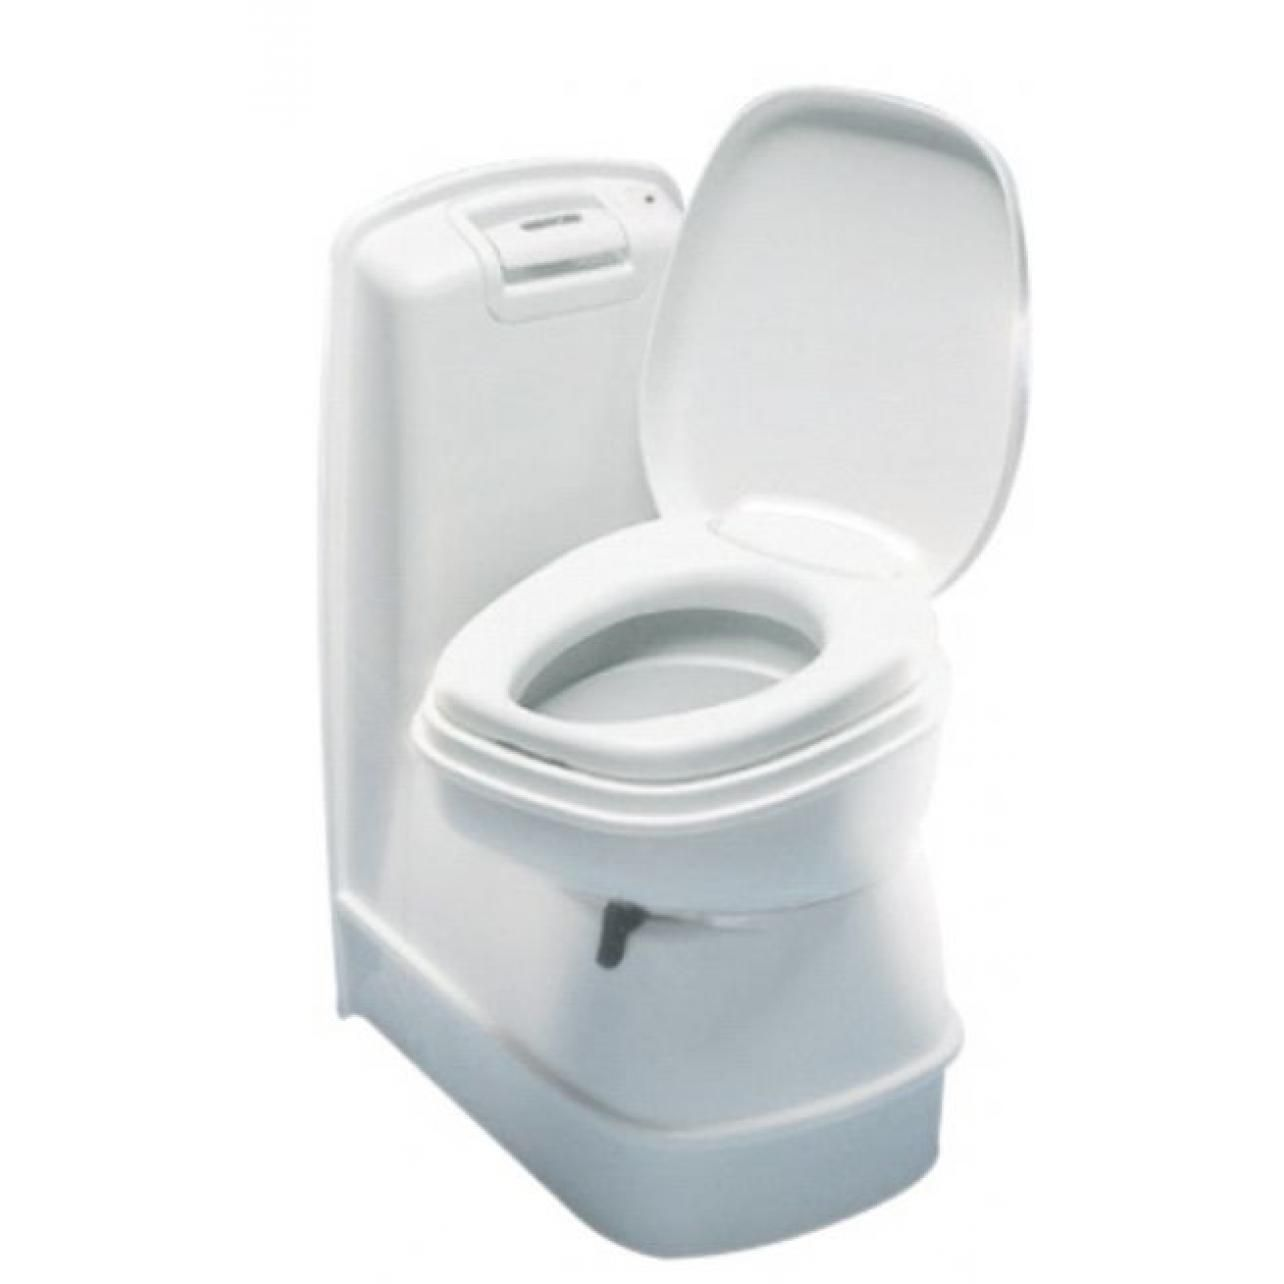 Thetford Cassette Toilet C200cw Manual Flush Tiny Bathroom Parts Breakdown Together With Rv Diagram